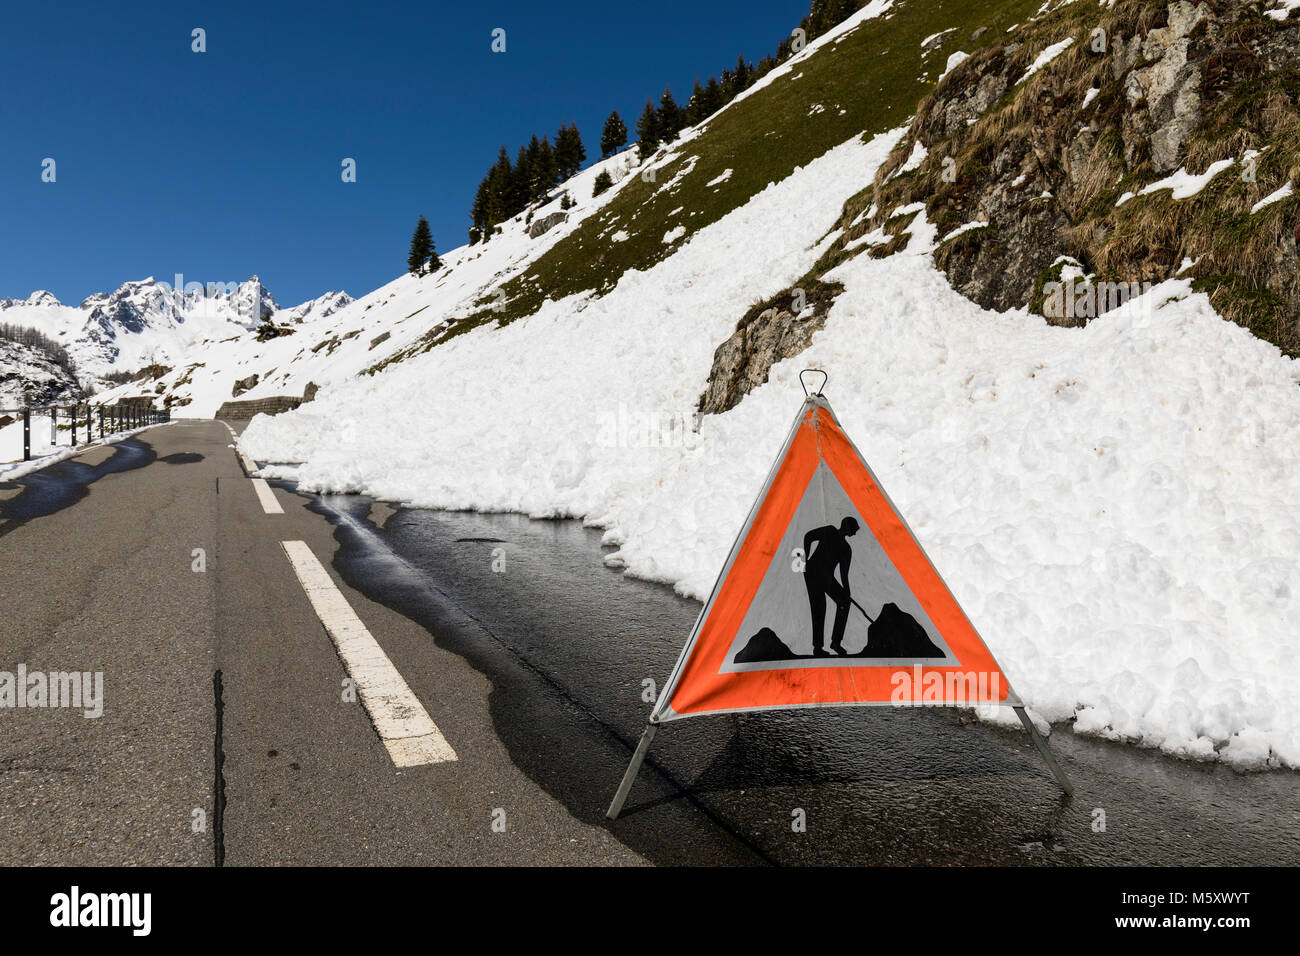 Warning sign because of a road blocked by a snow slide in the Alps - Stock Image